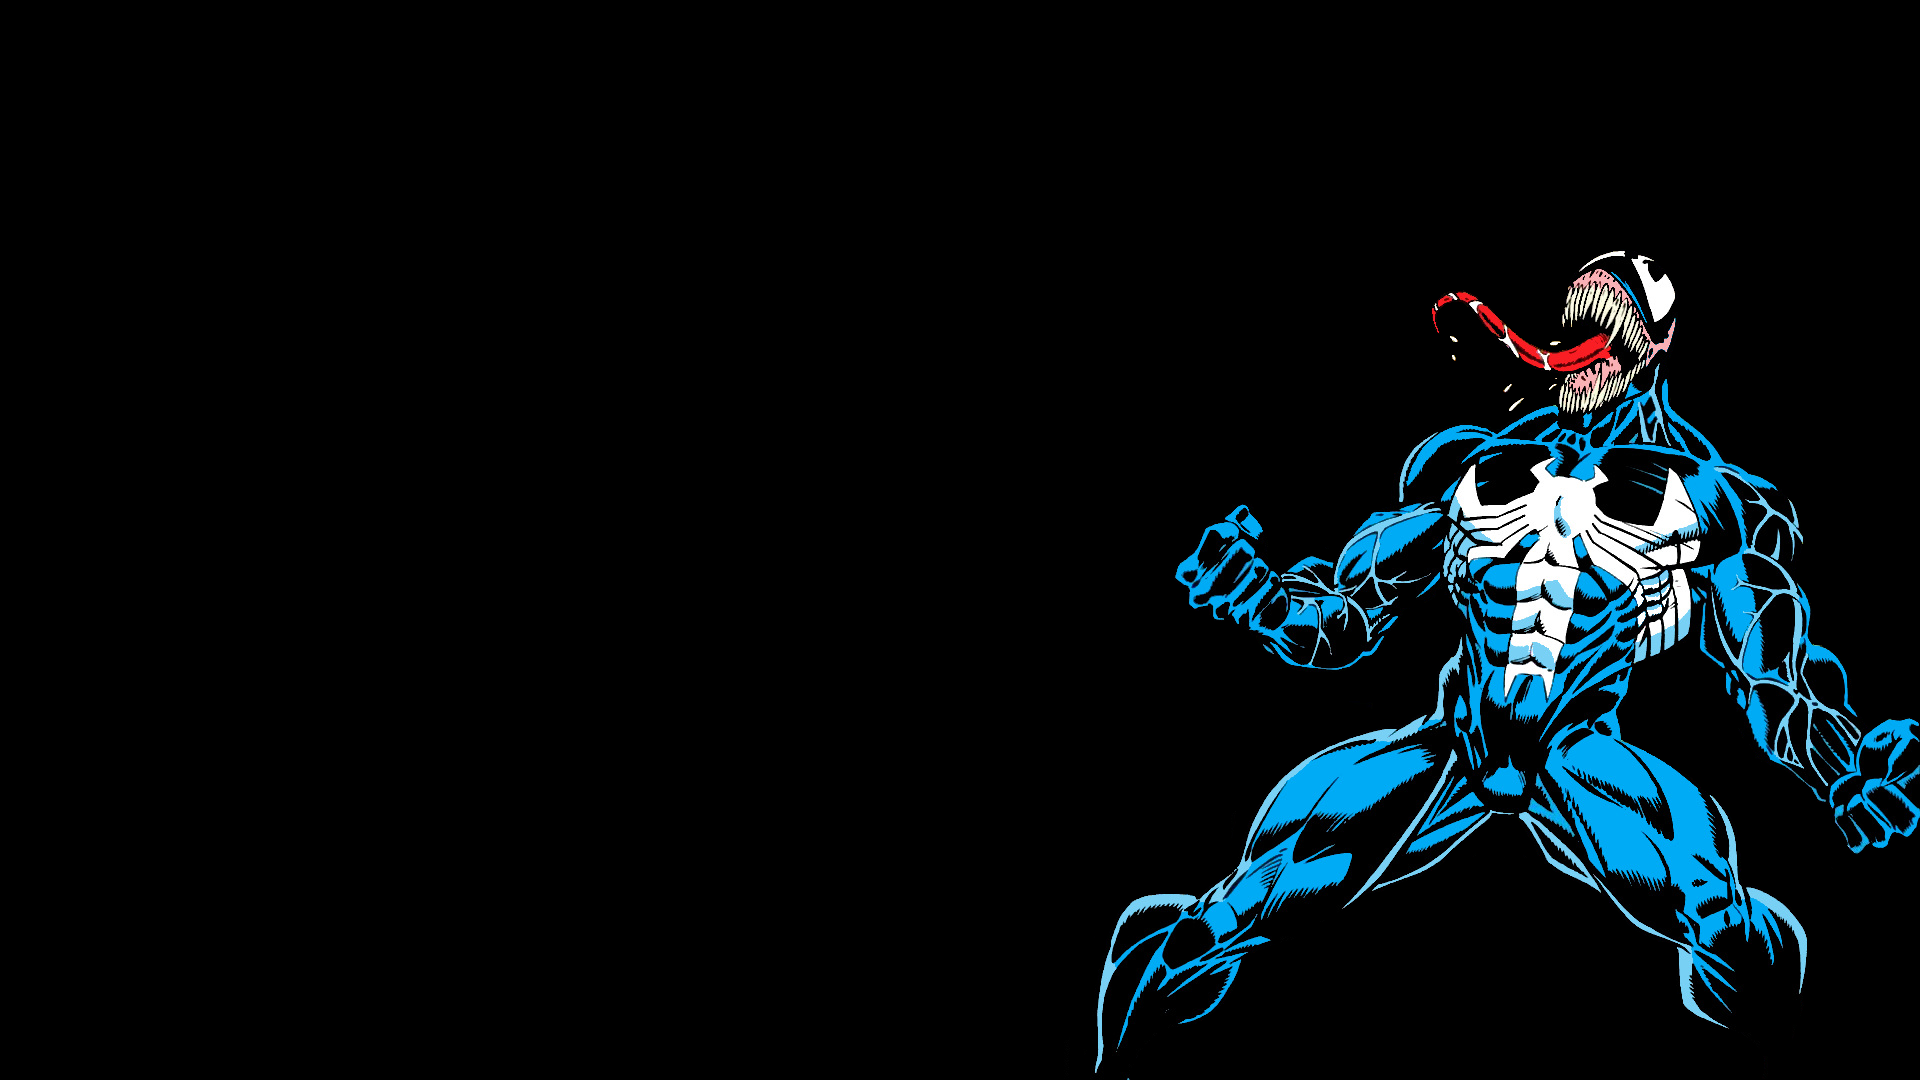 By Request Venom ASM 378 1920x1080 Need iPhone 6S